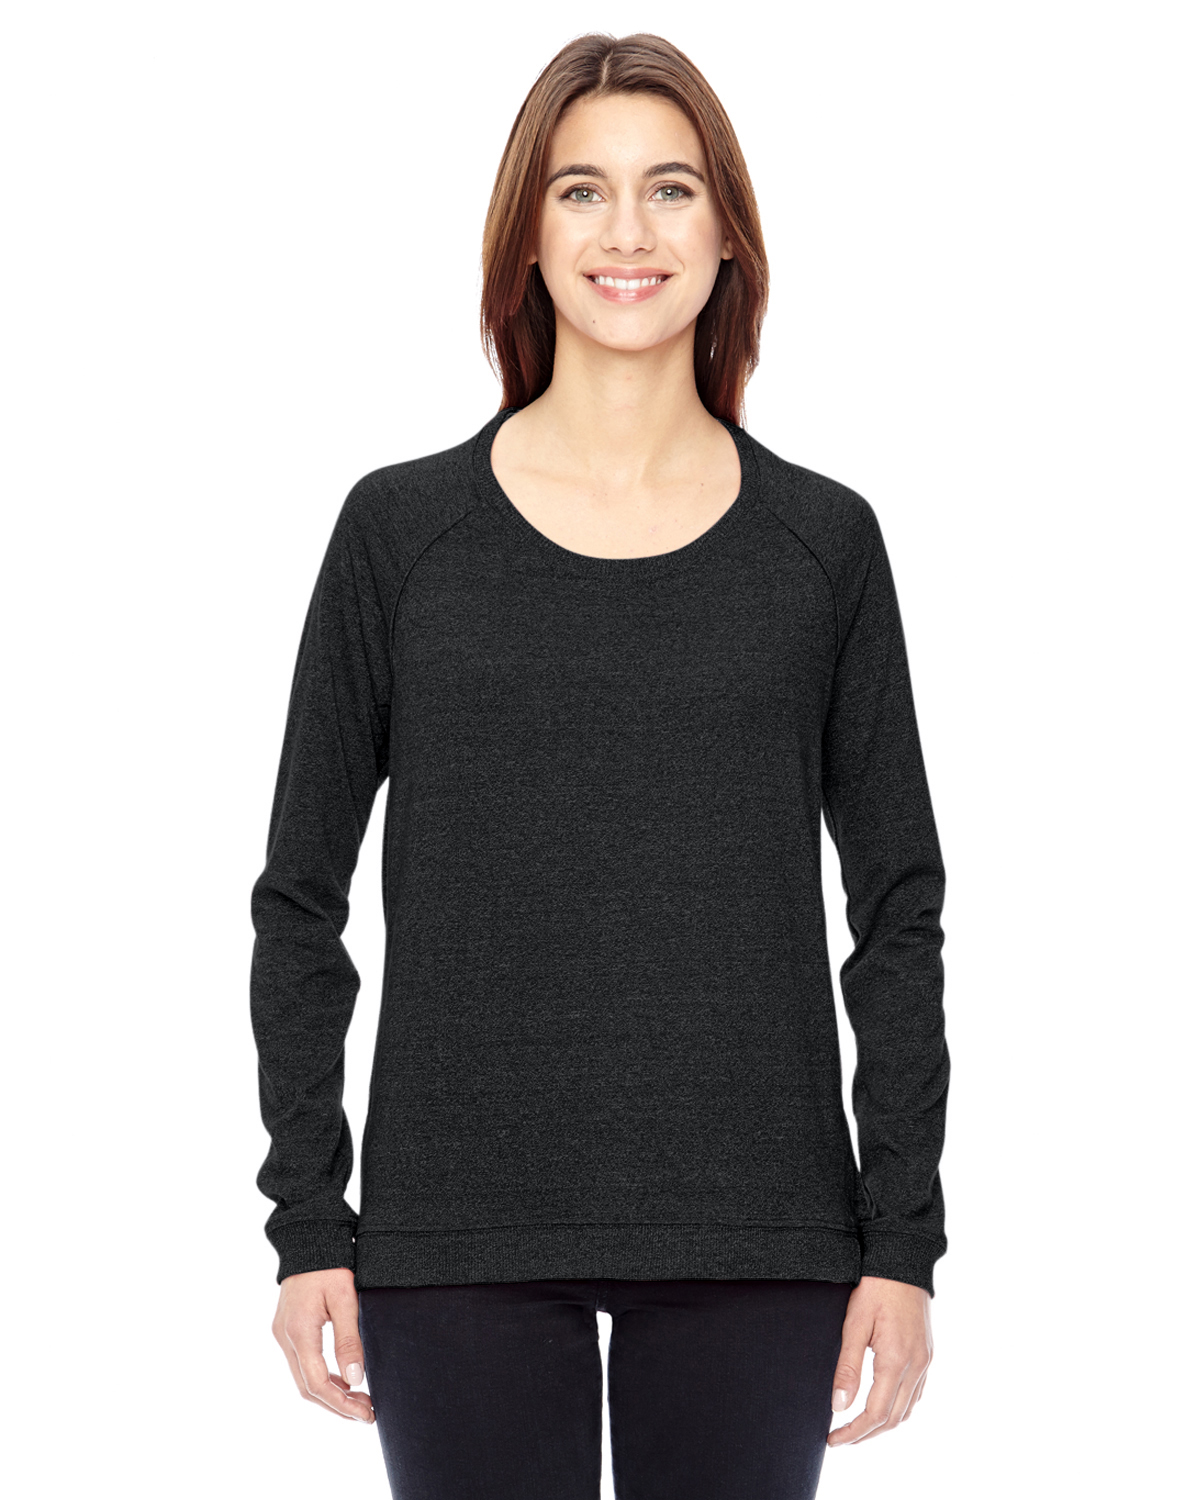 Alternative Ladies Eco-Mock Twist Locker Room Pullover